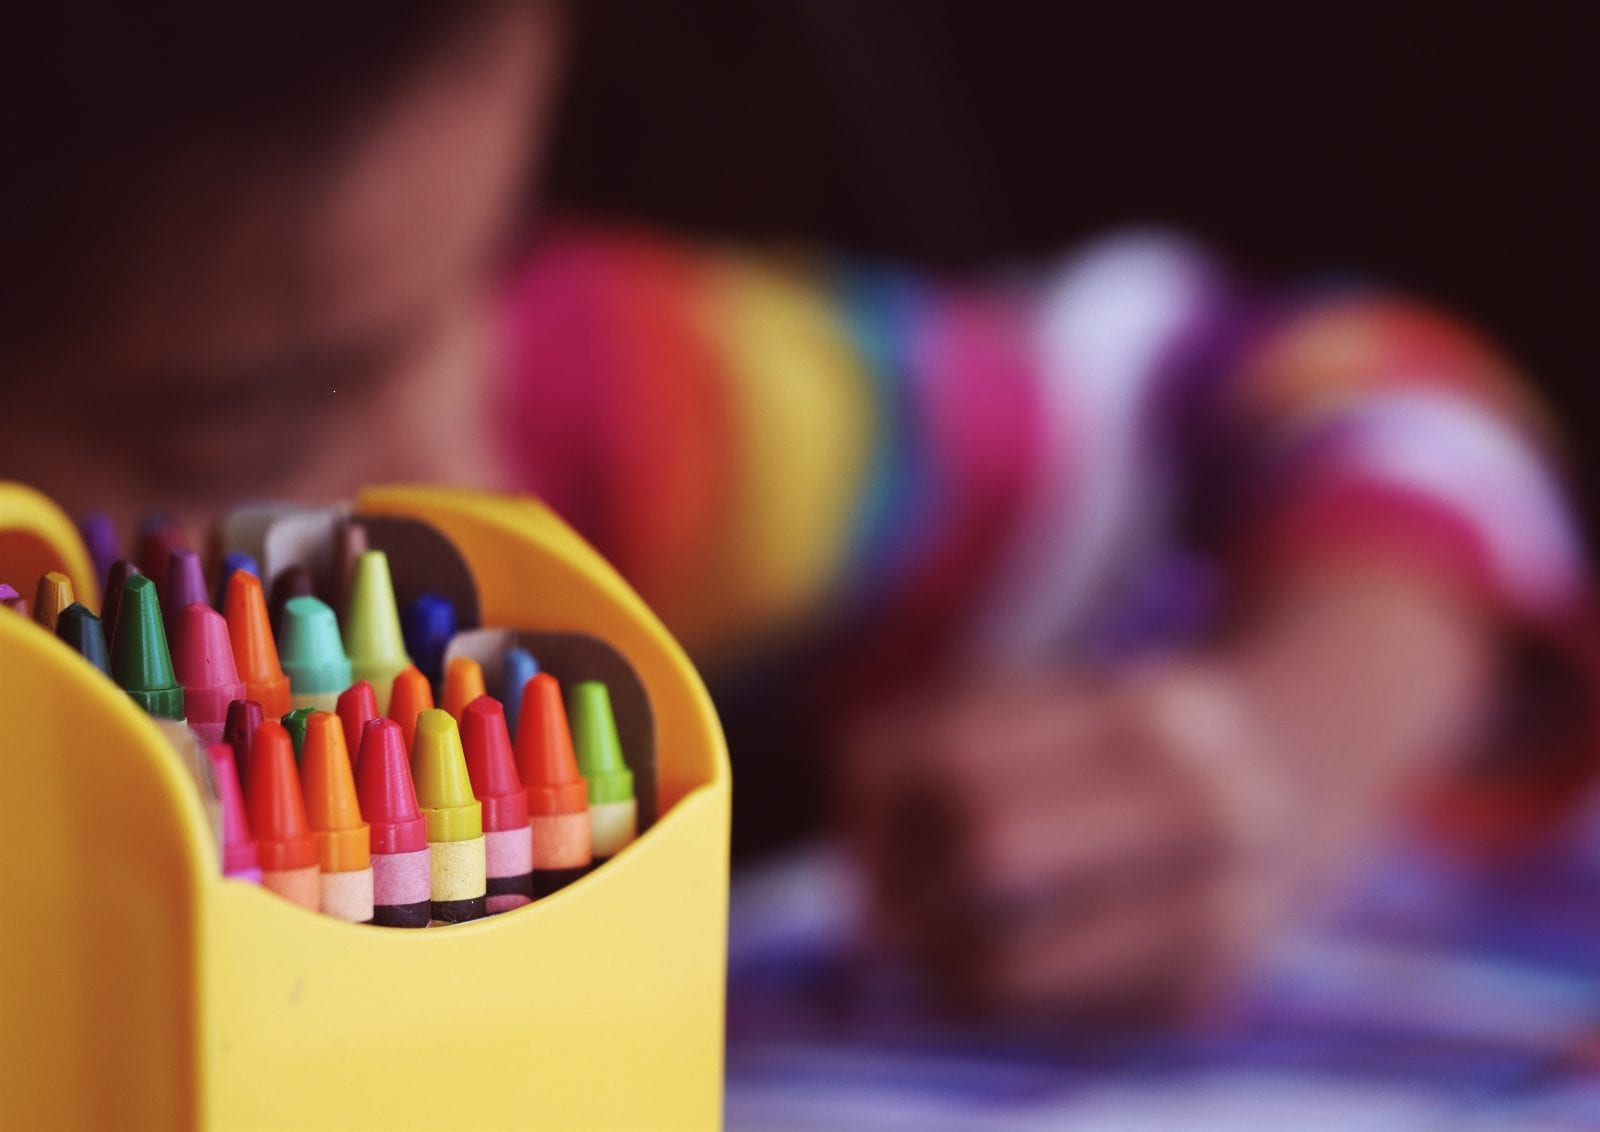 focus on a box of colored crayons, blurred child coloring in the background